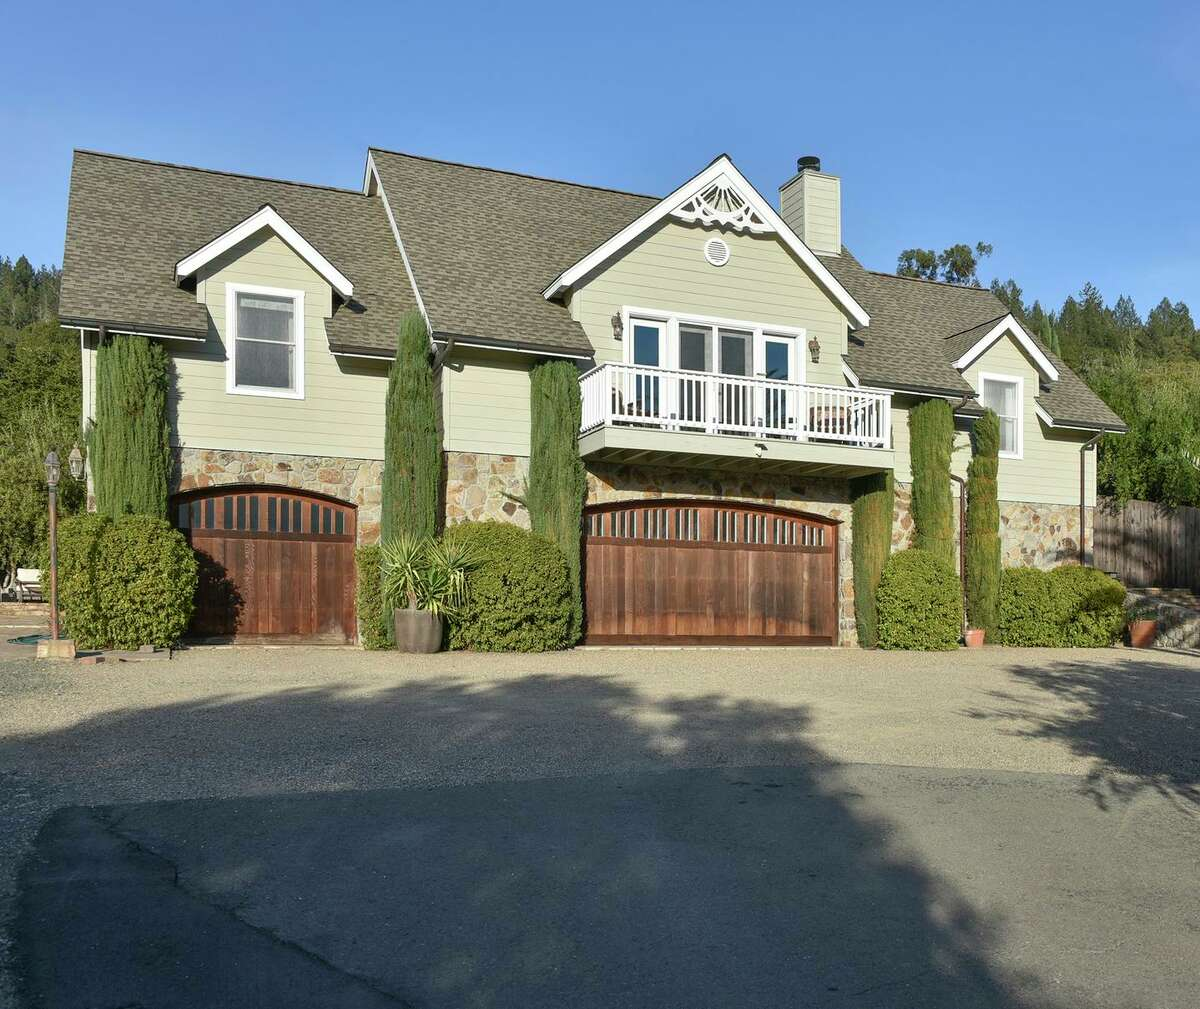 The two-bedroom main home features a two-car garage.